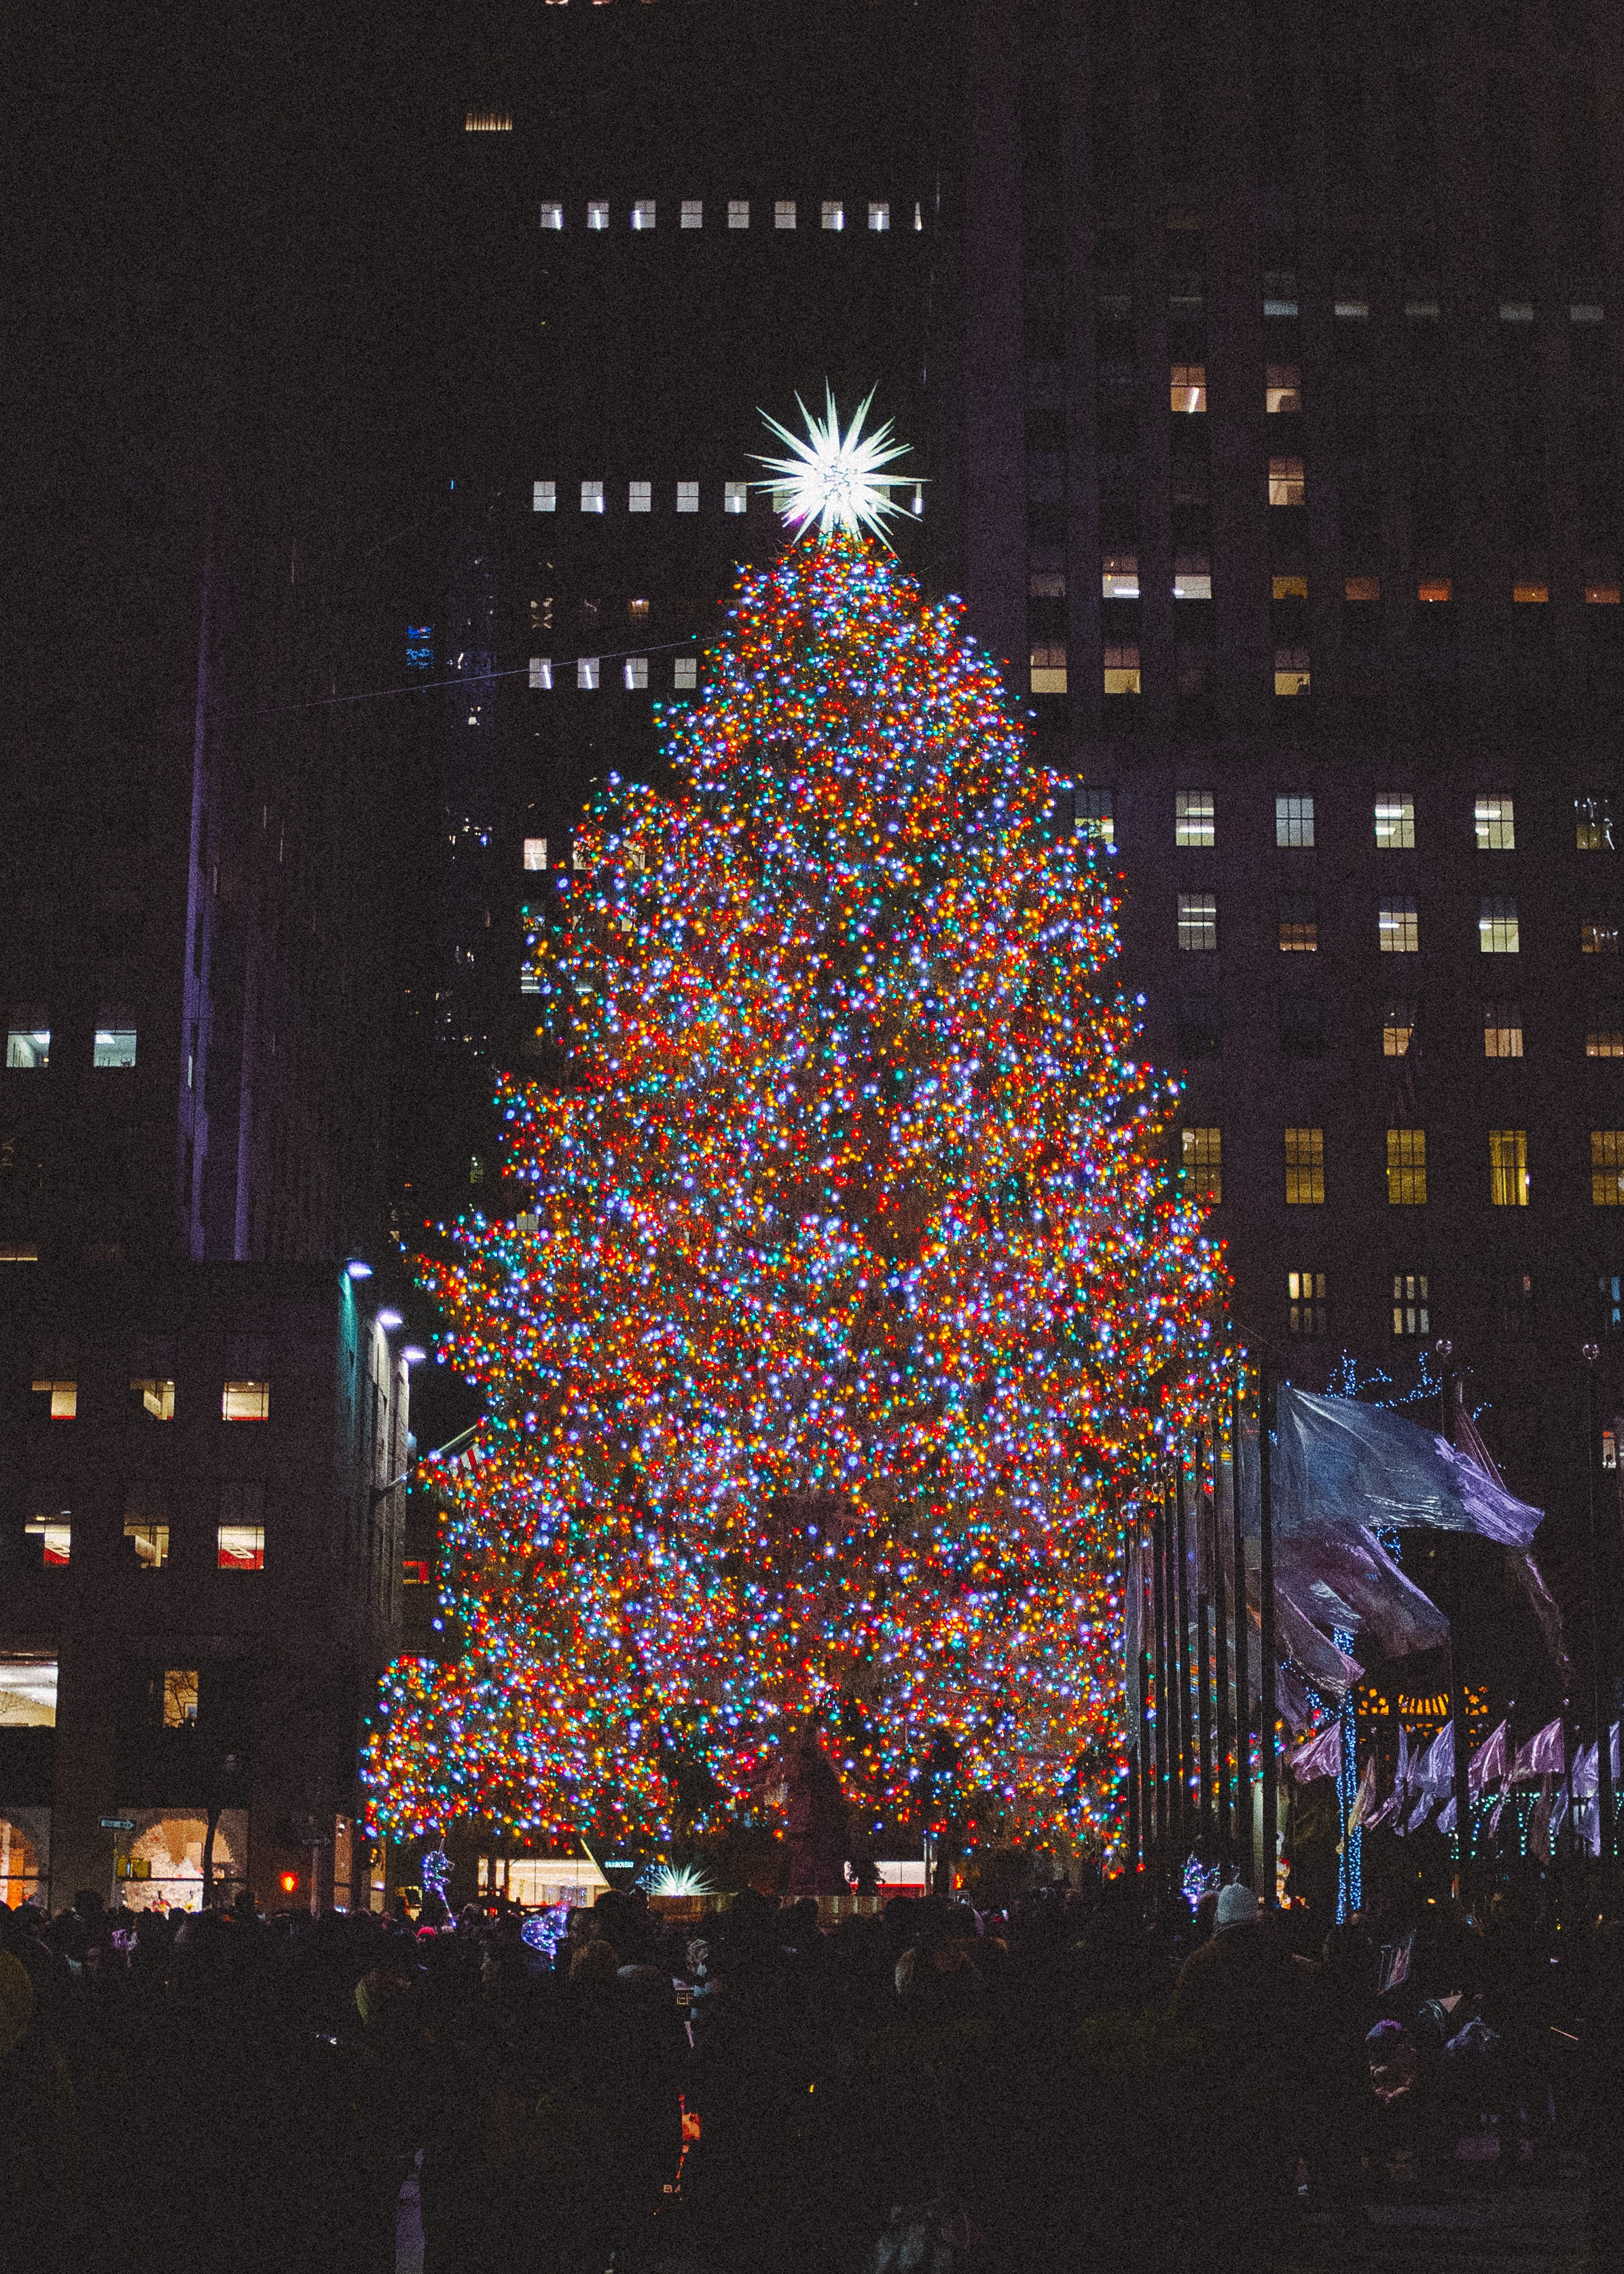 Rockefeller Christmas Tree 2021 Broadcast Mapping The Rockefeller Center Tree With Ggplot2 In R By Matt Russell Towards Data Science